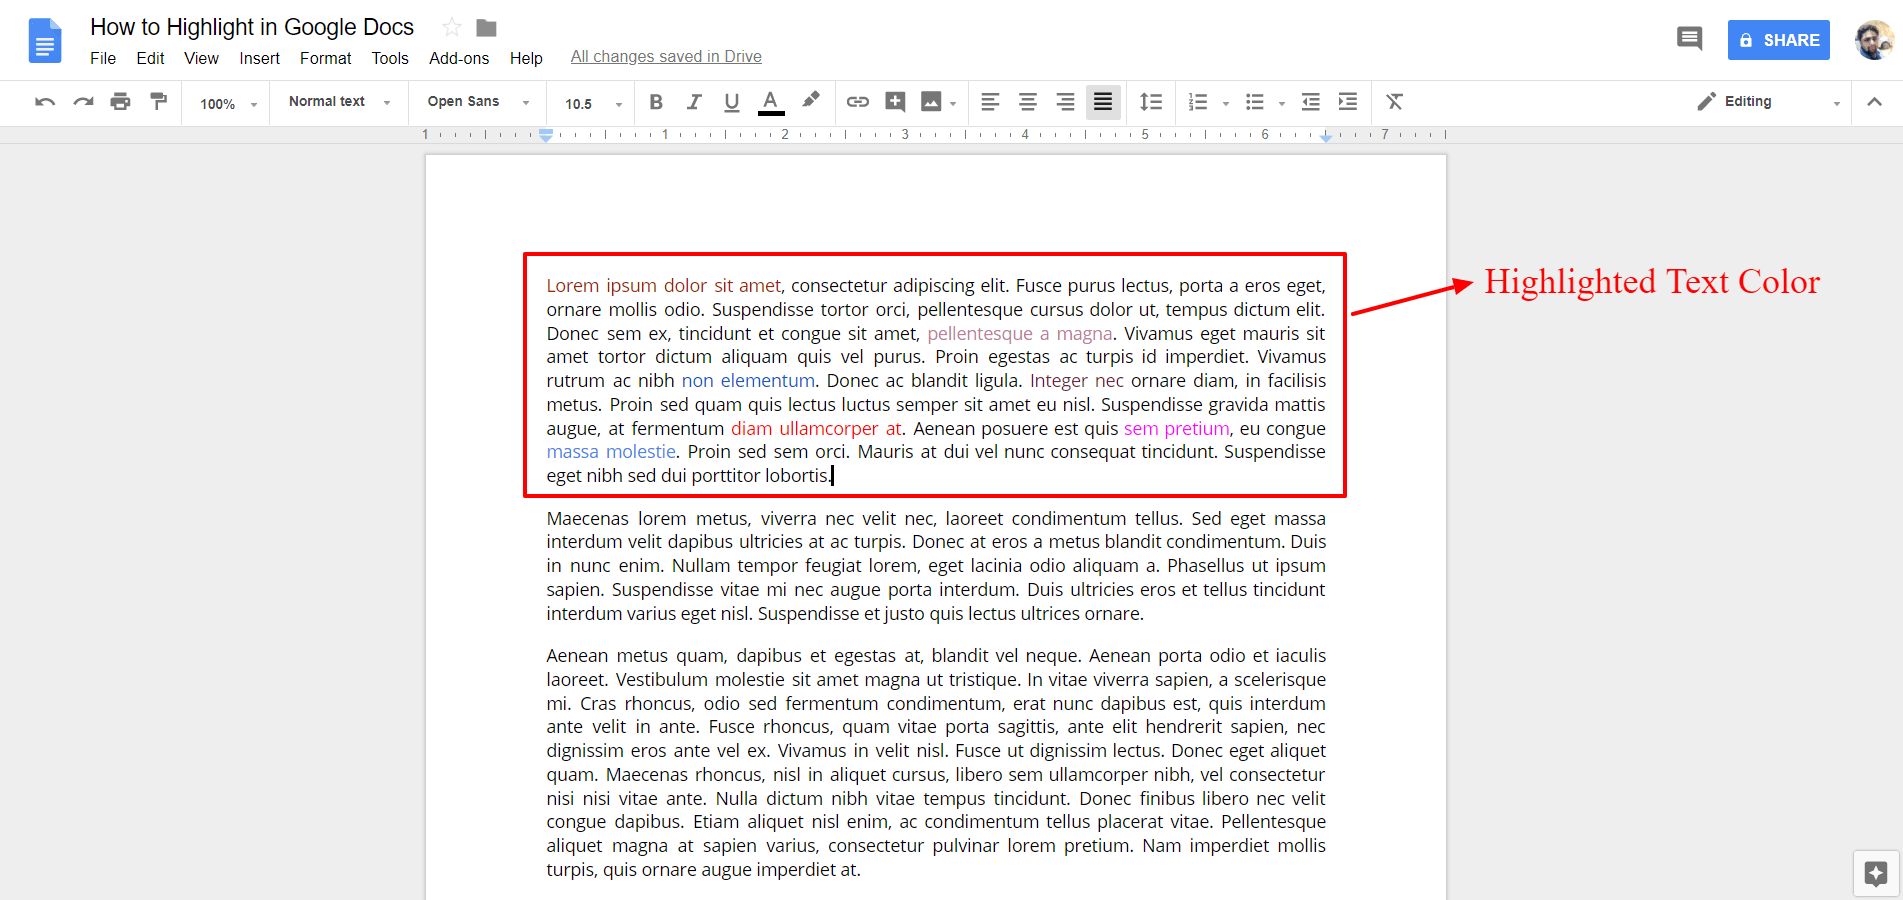 Highlighted Text Color - Google Docs